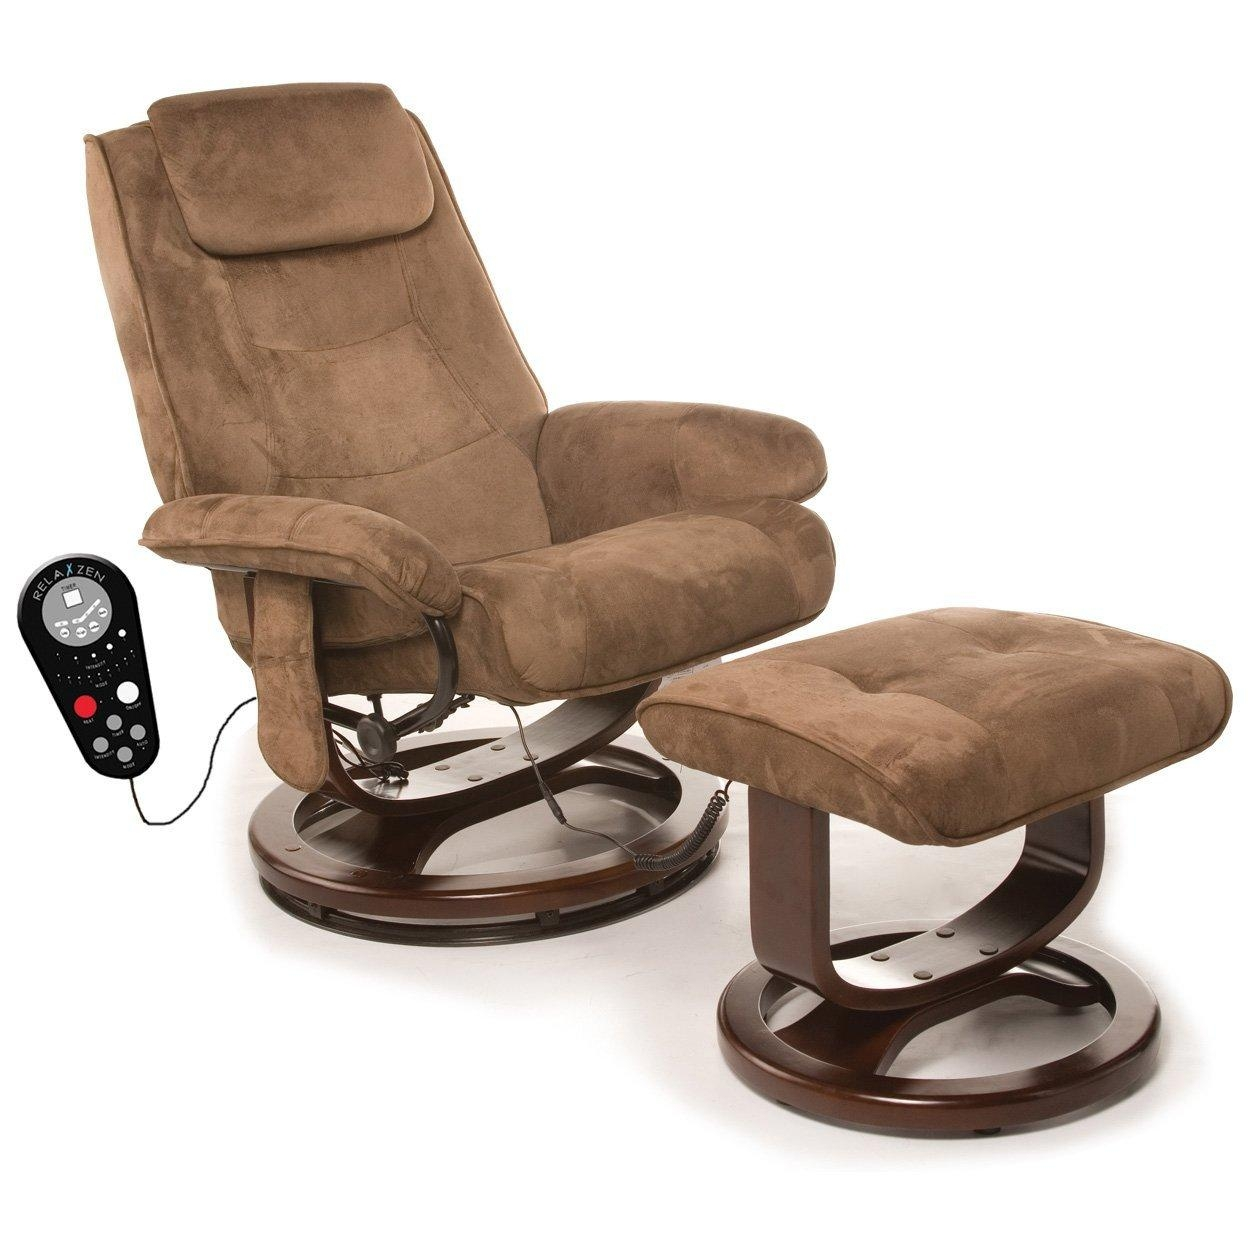 Top 10 Best Heated Vibrating Chairs In 2017 Reviews Regarding Ergonomic Sofas And Chairs (View 12 of 20)